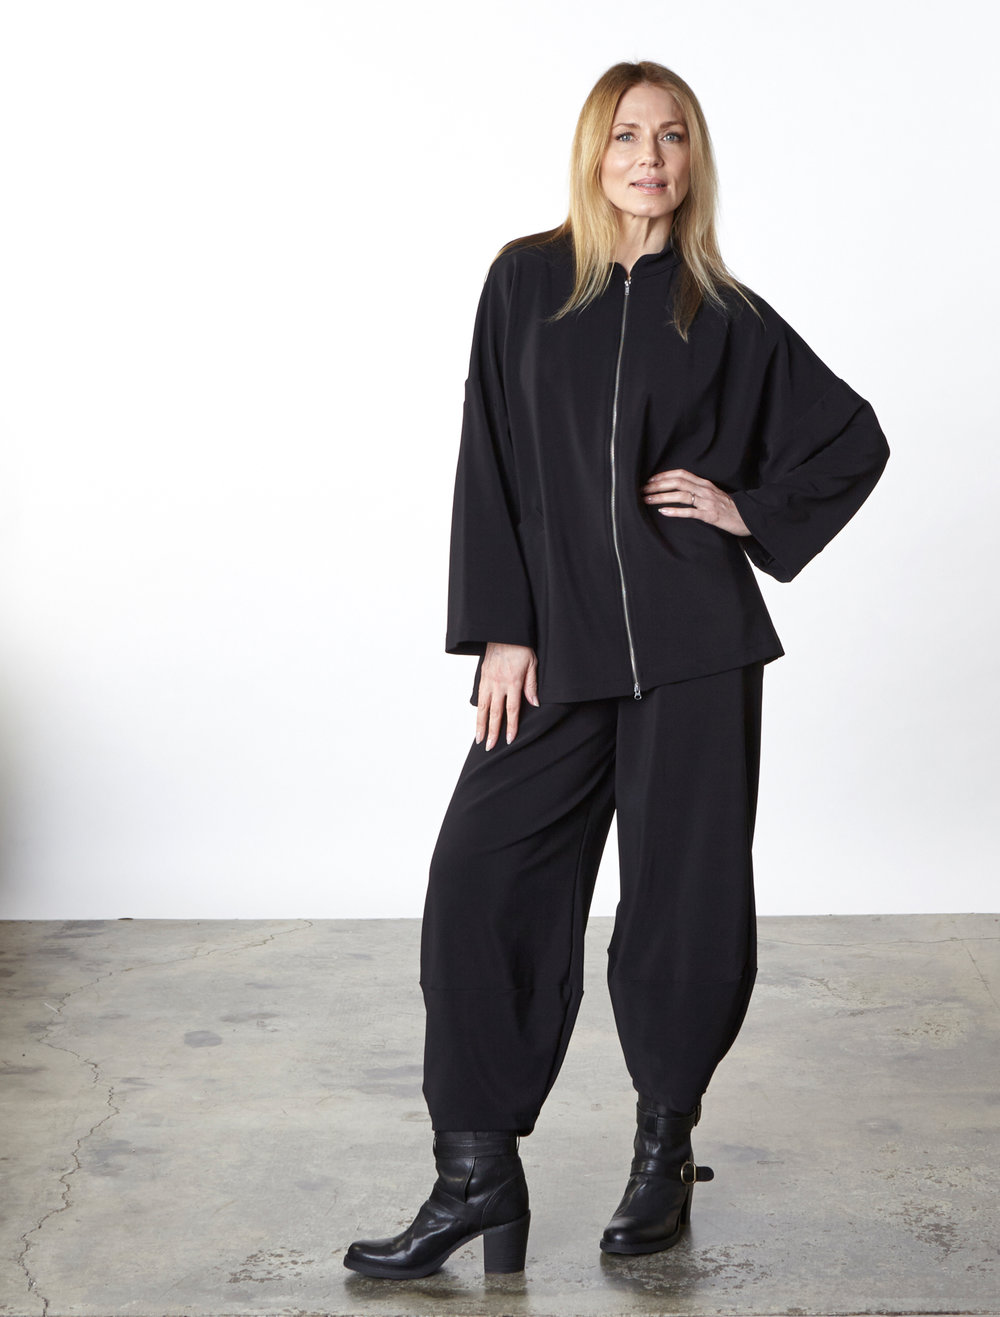 Danuta Jacket, Oliver Pant in Black Ready for Zurich